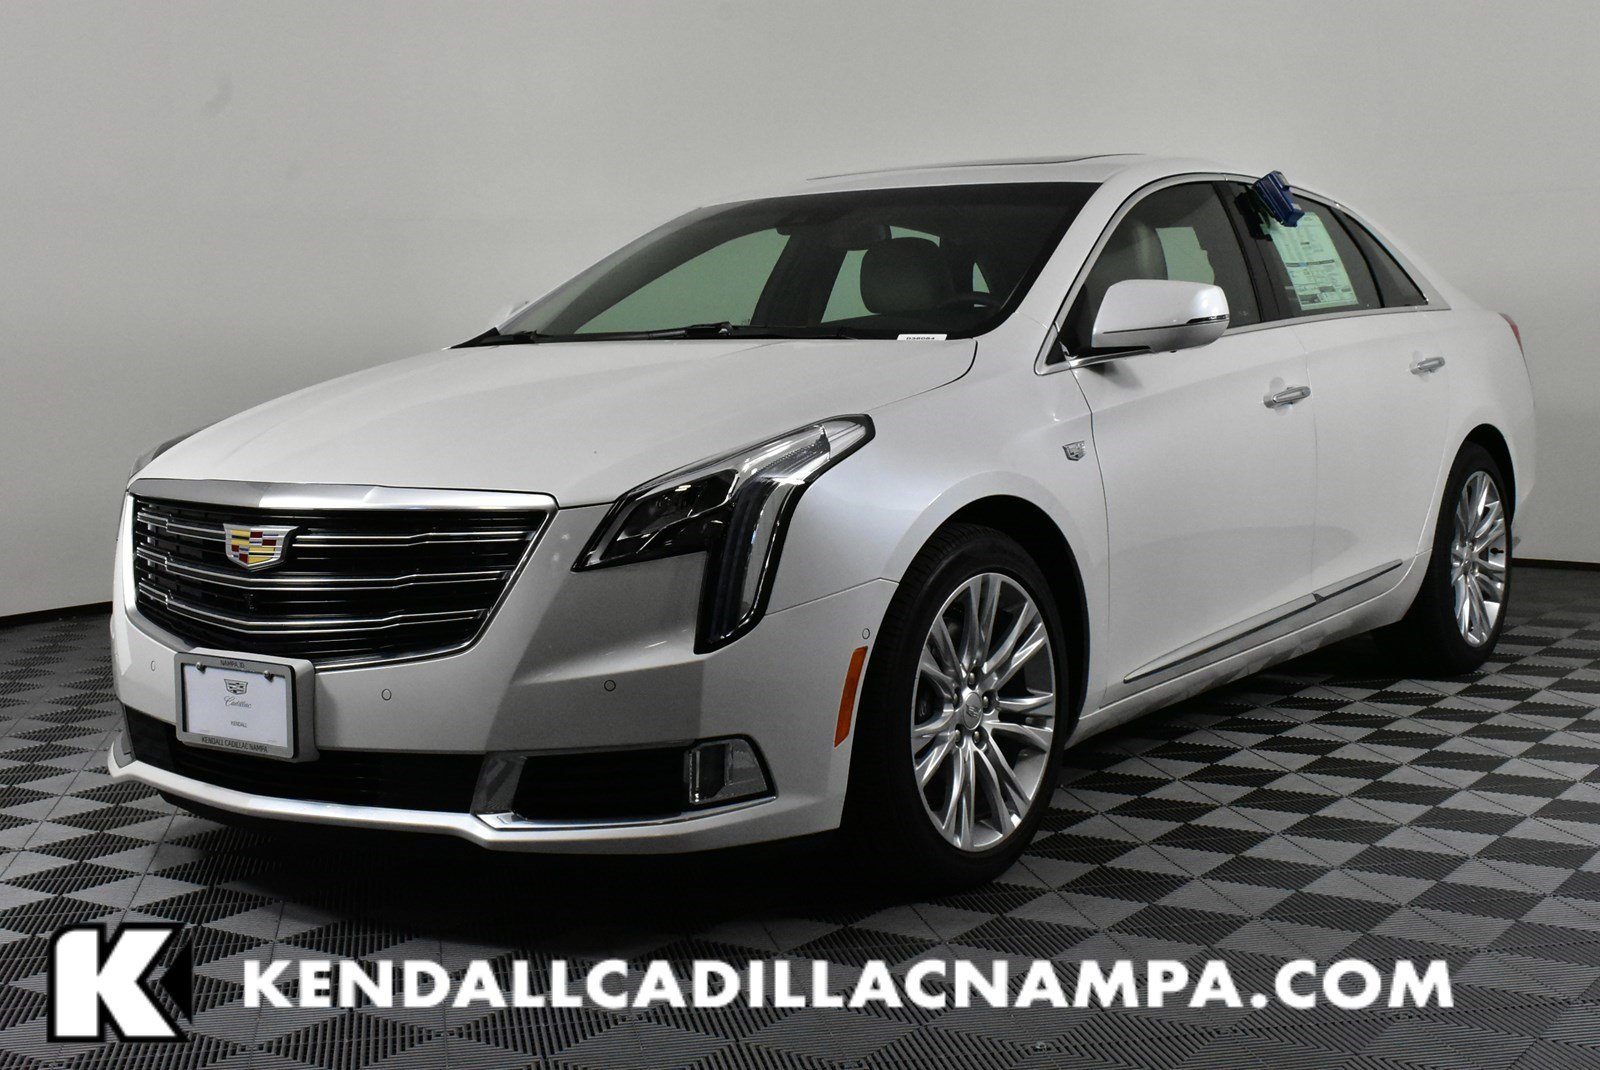 New 2018 Cadillac Xts Luxury In Nampa D38084 Kendall At The Idaho